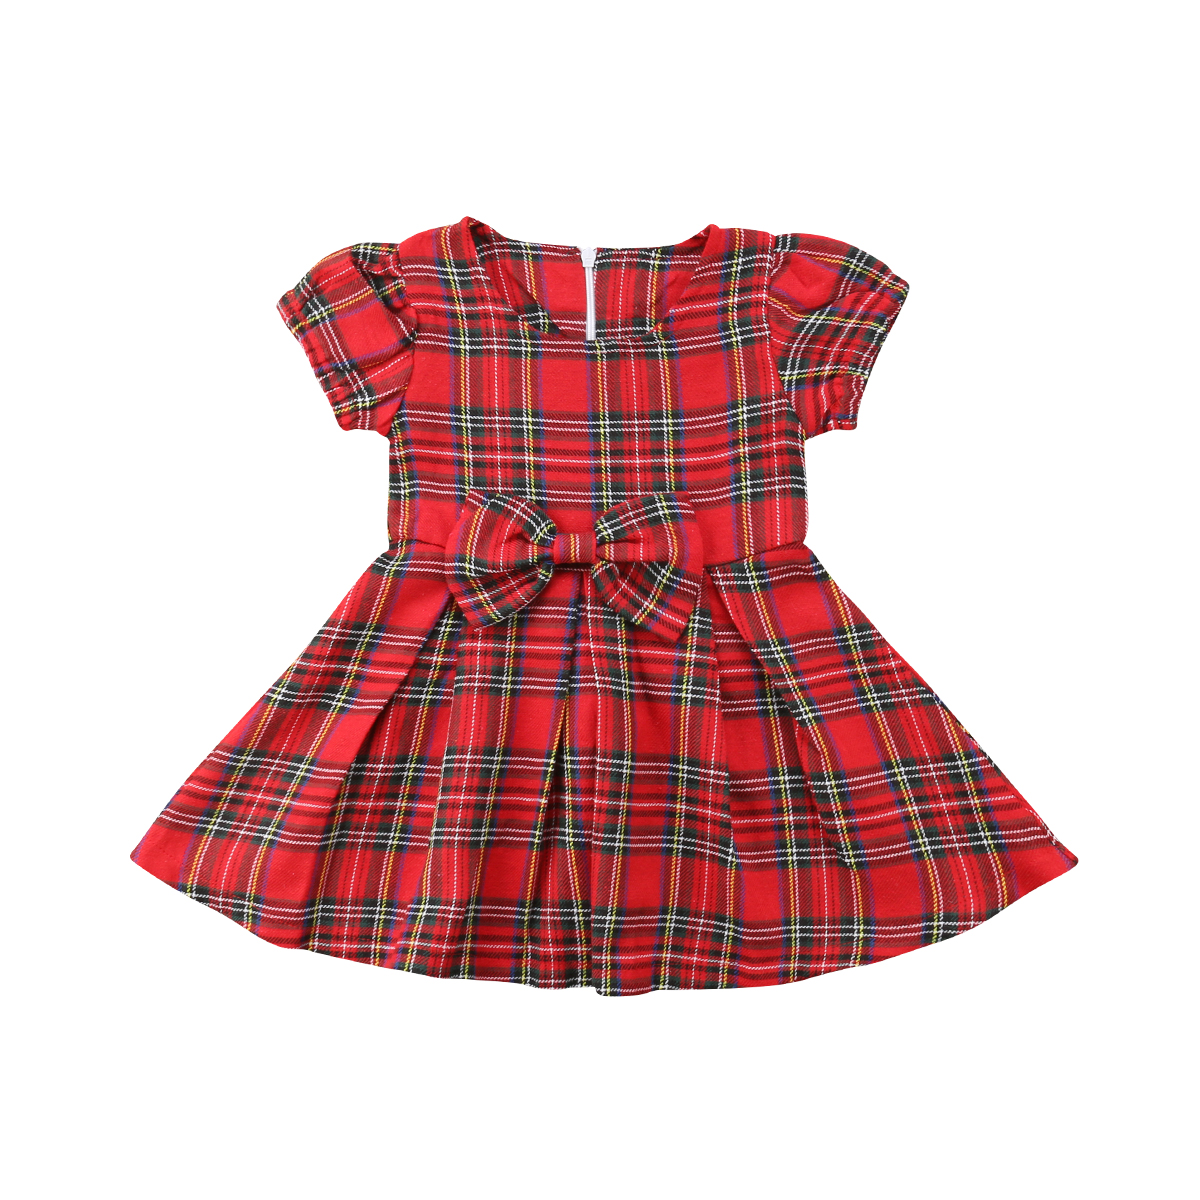 Jeinxcn Toddler Baby Girl Plaid Shirt Dress Long Sleeve Princess Party Dress Clothes Outfits